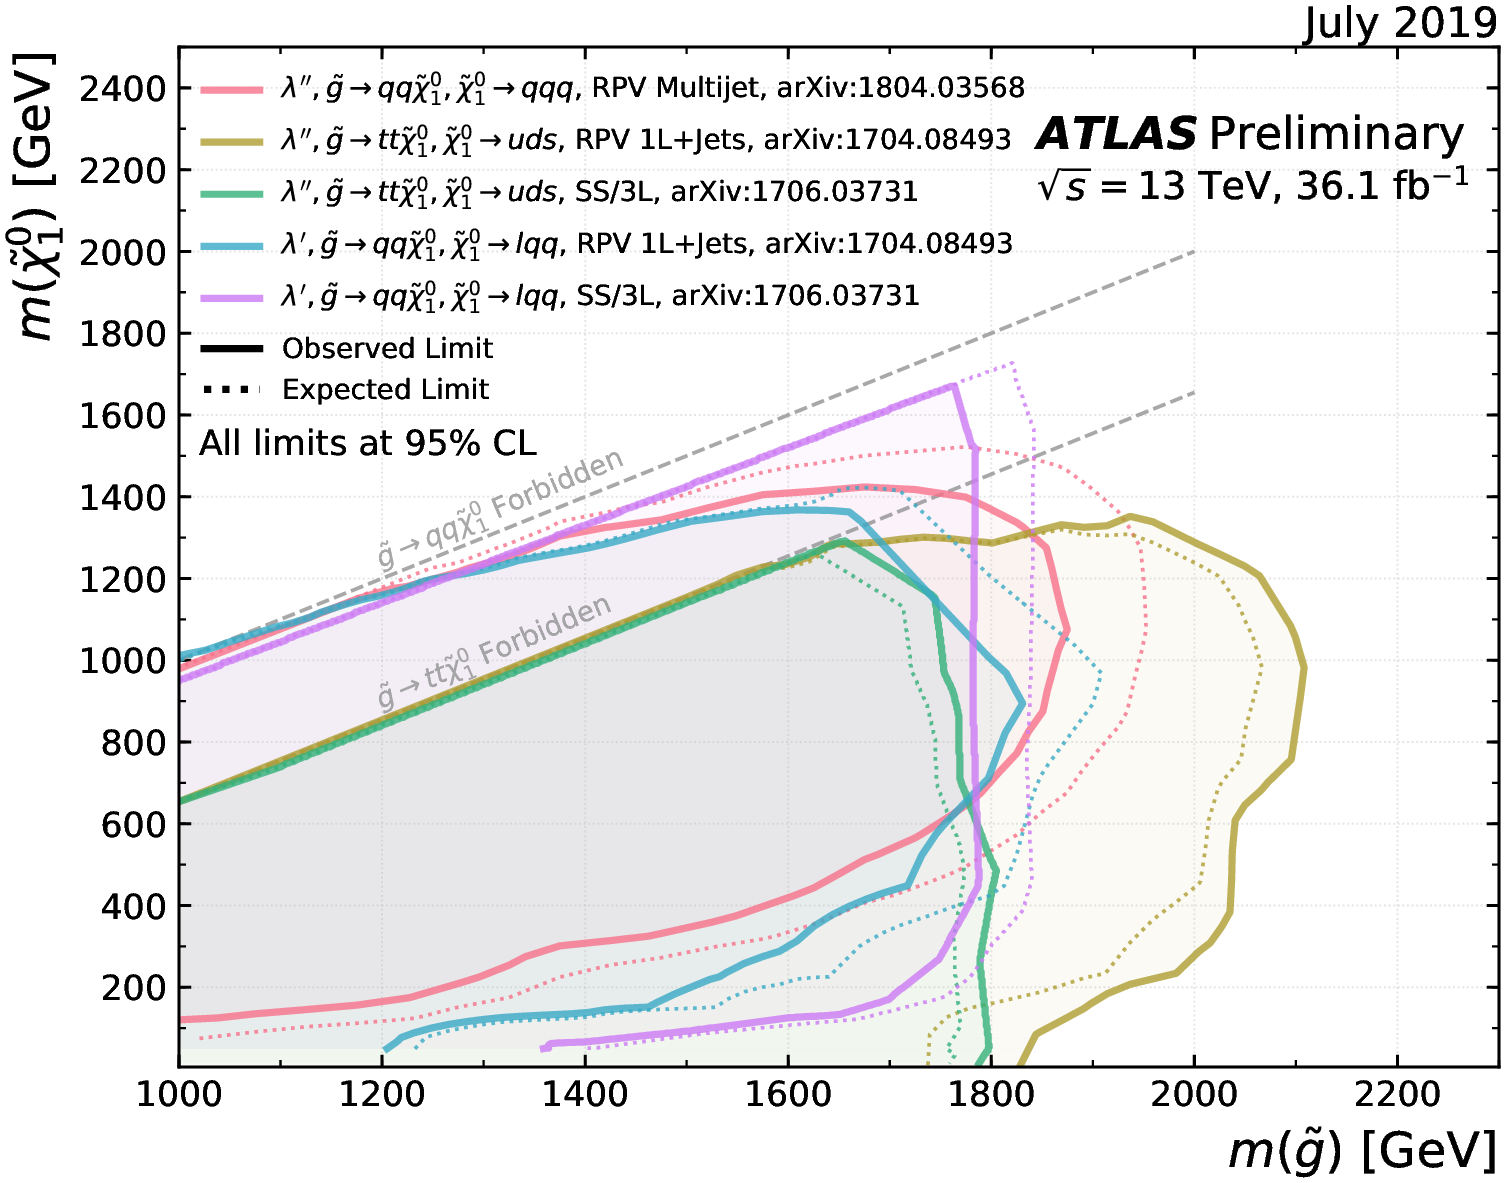 https://atlas.web.cern.ch/Atlas/GROUPS/PHYSICS/CombinedSummaryPlots/SUSY/ATLAS_SUSY_RPV_gluino/ATLAS_SUSY_RPV_gluino.png